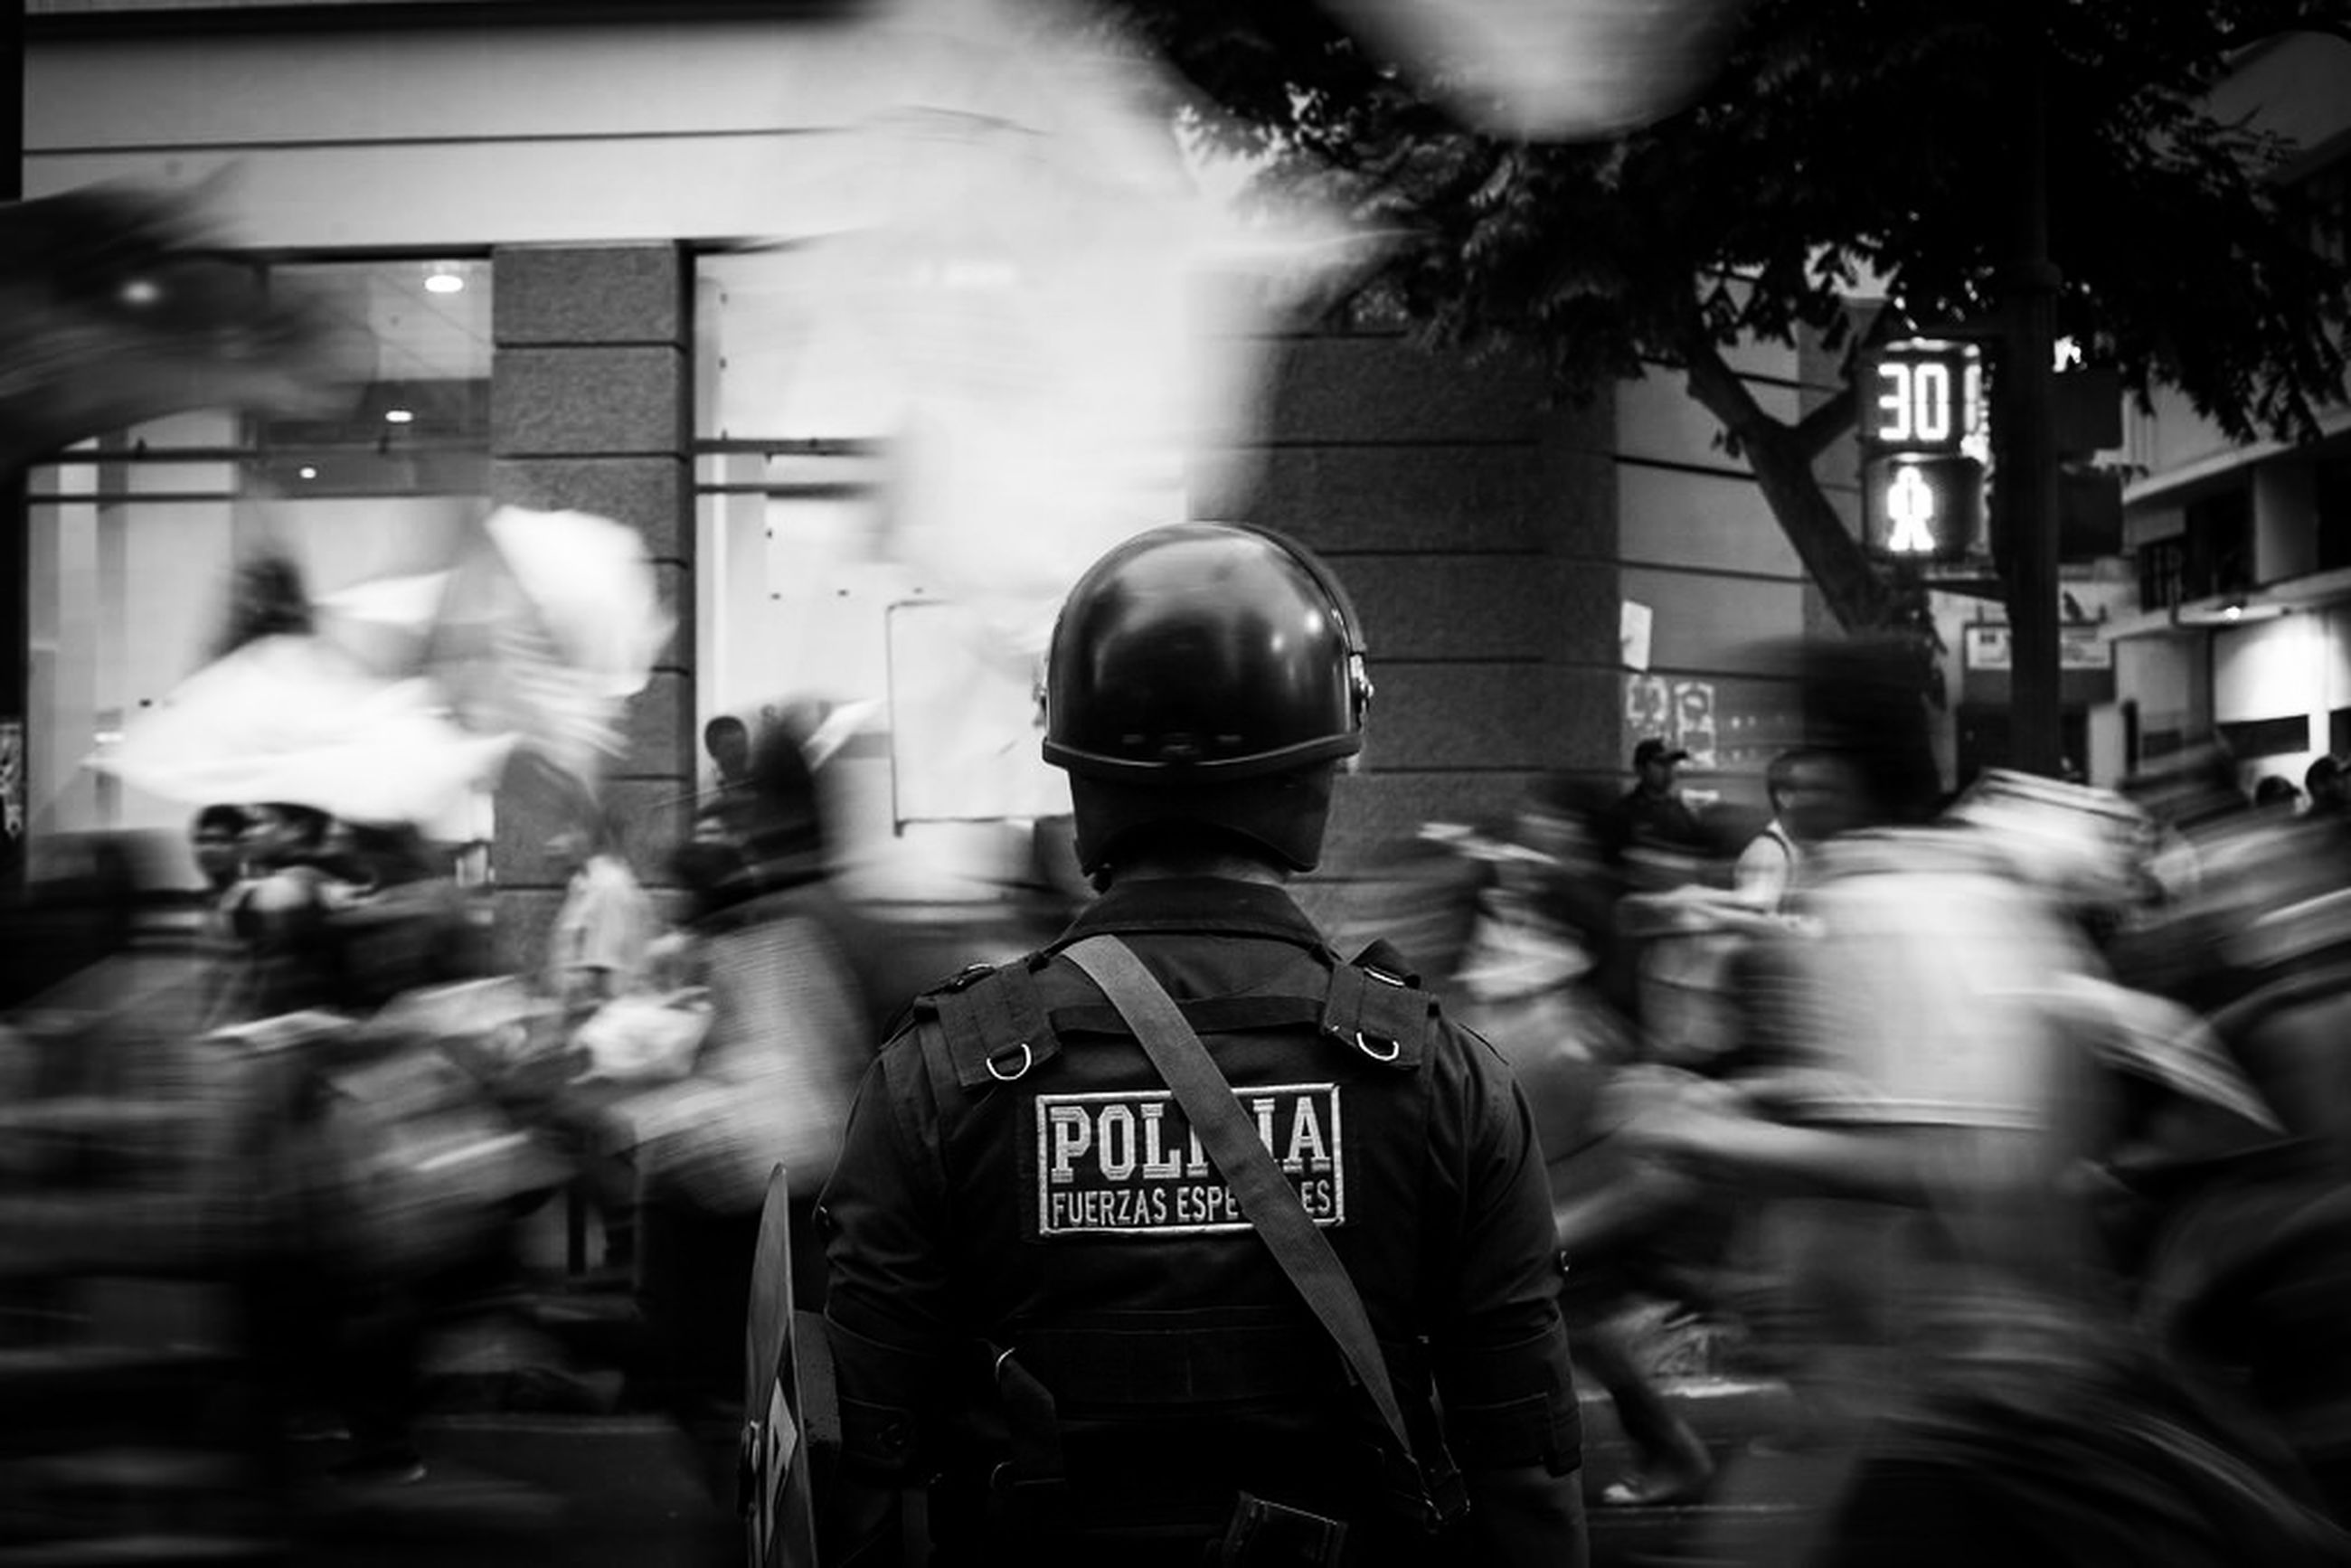 rear view, city, men, uniform, real people, responsibility, protective workwear, guarding, people, outdoors, adult, day